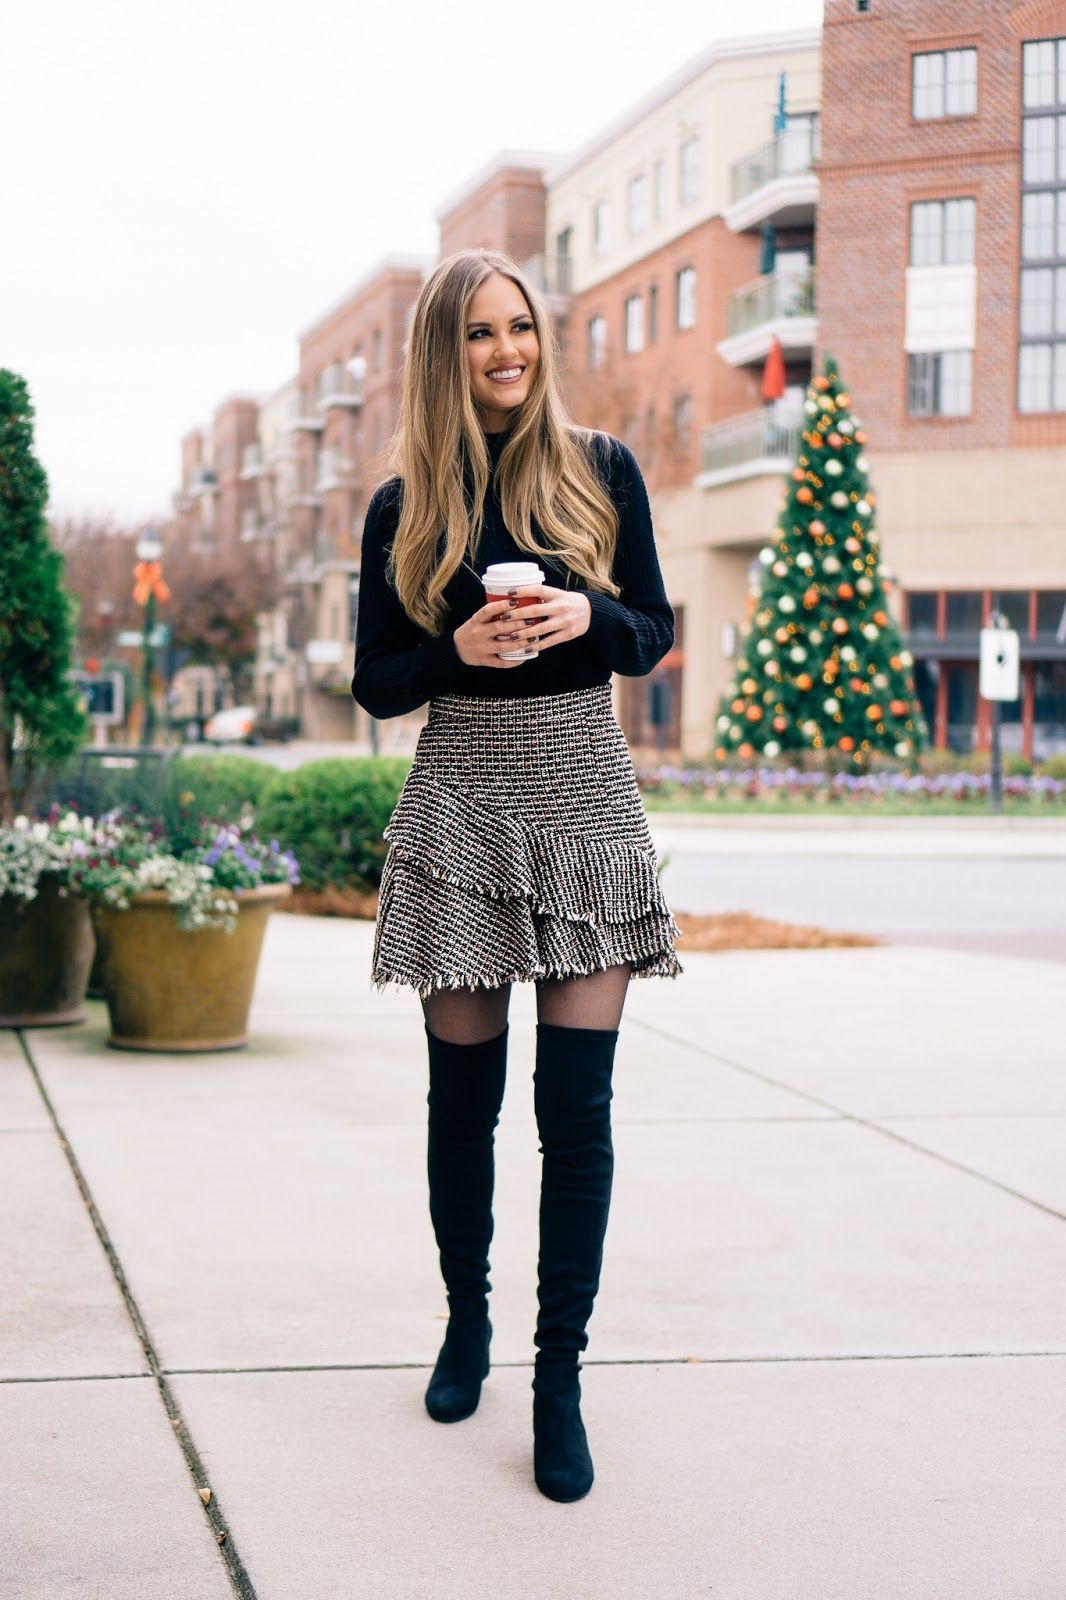 Tweed skirt outfit ideas, Over-the-knee boot